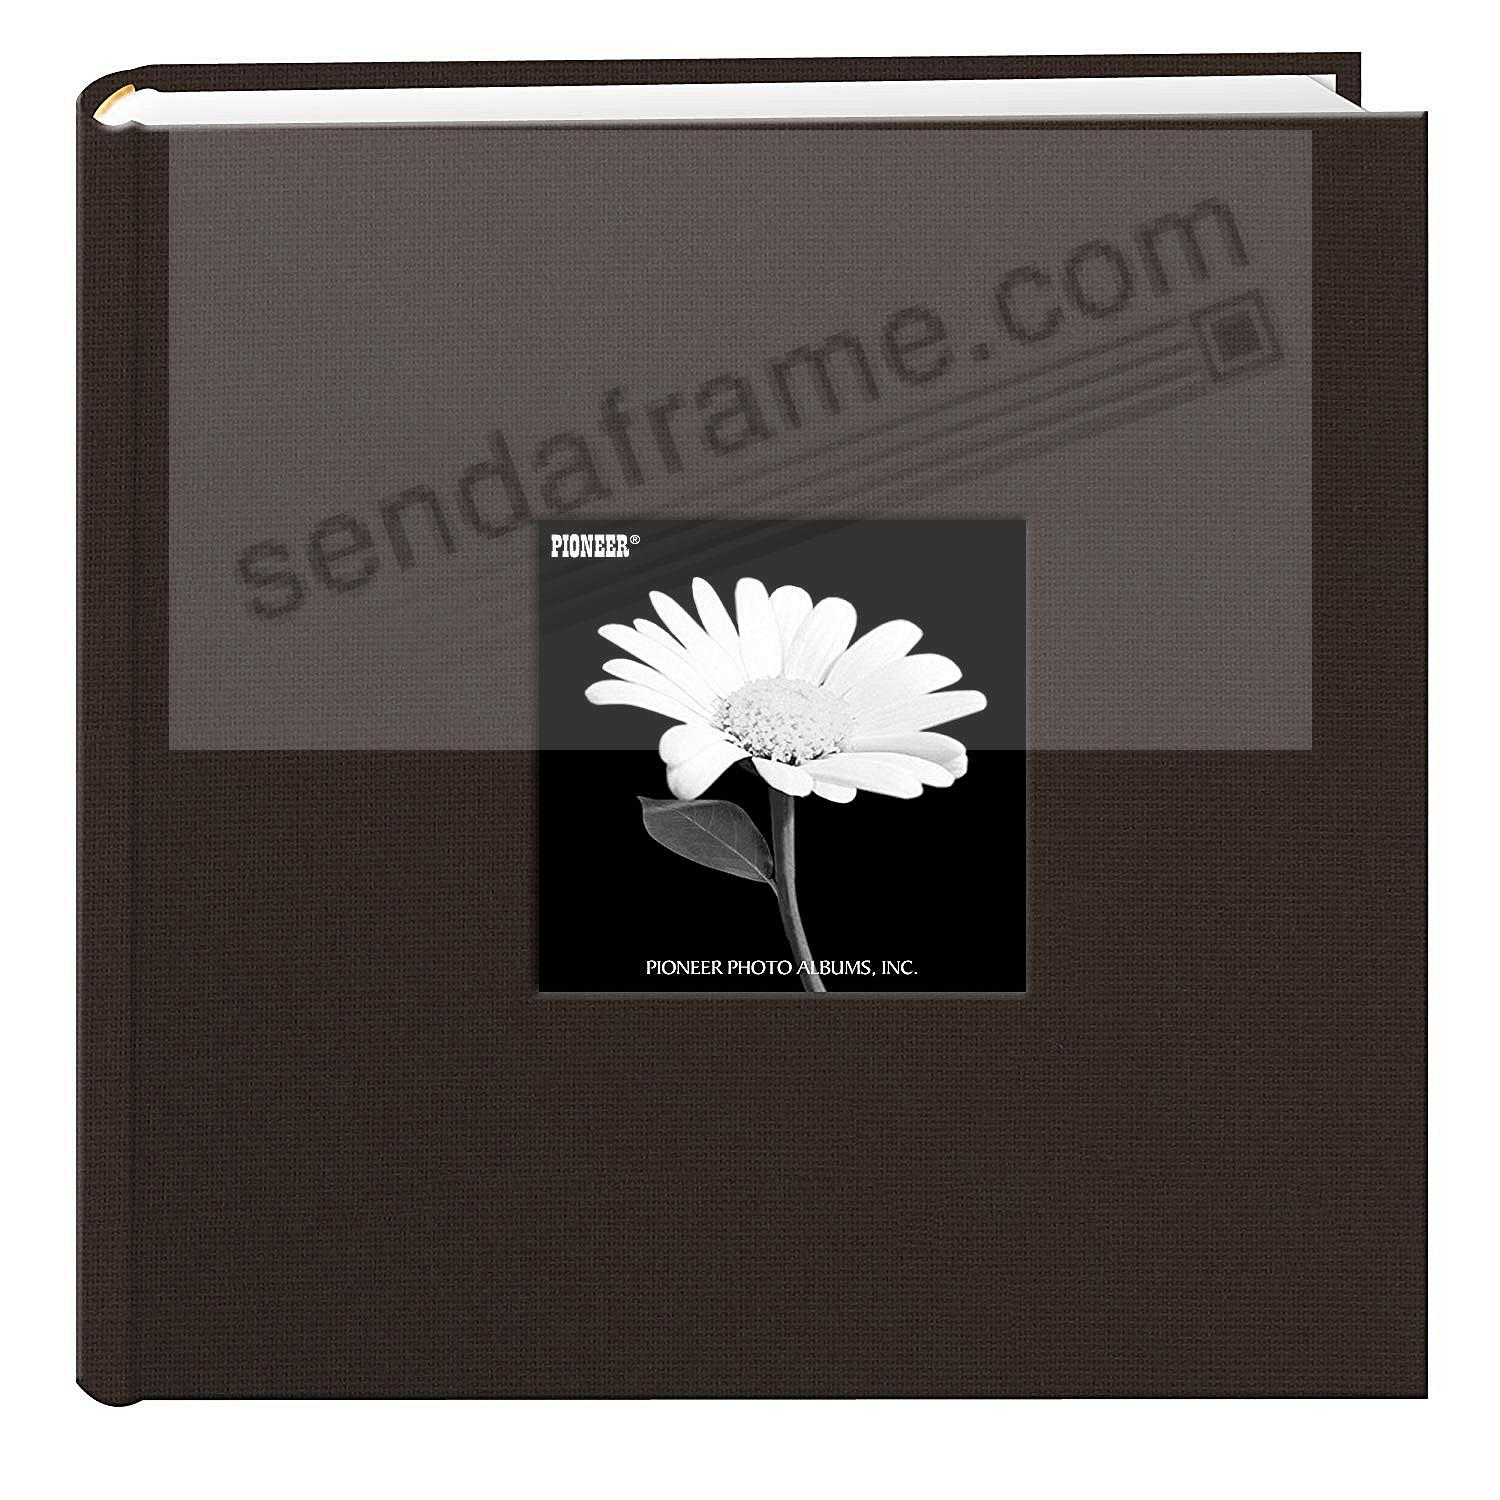 CHOCOLATE BROWN Cloth 2-up frame cover photo album by Pioneer®